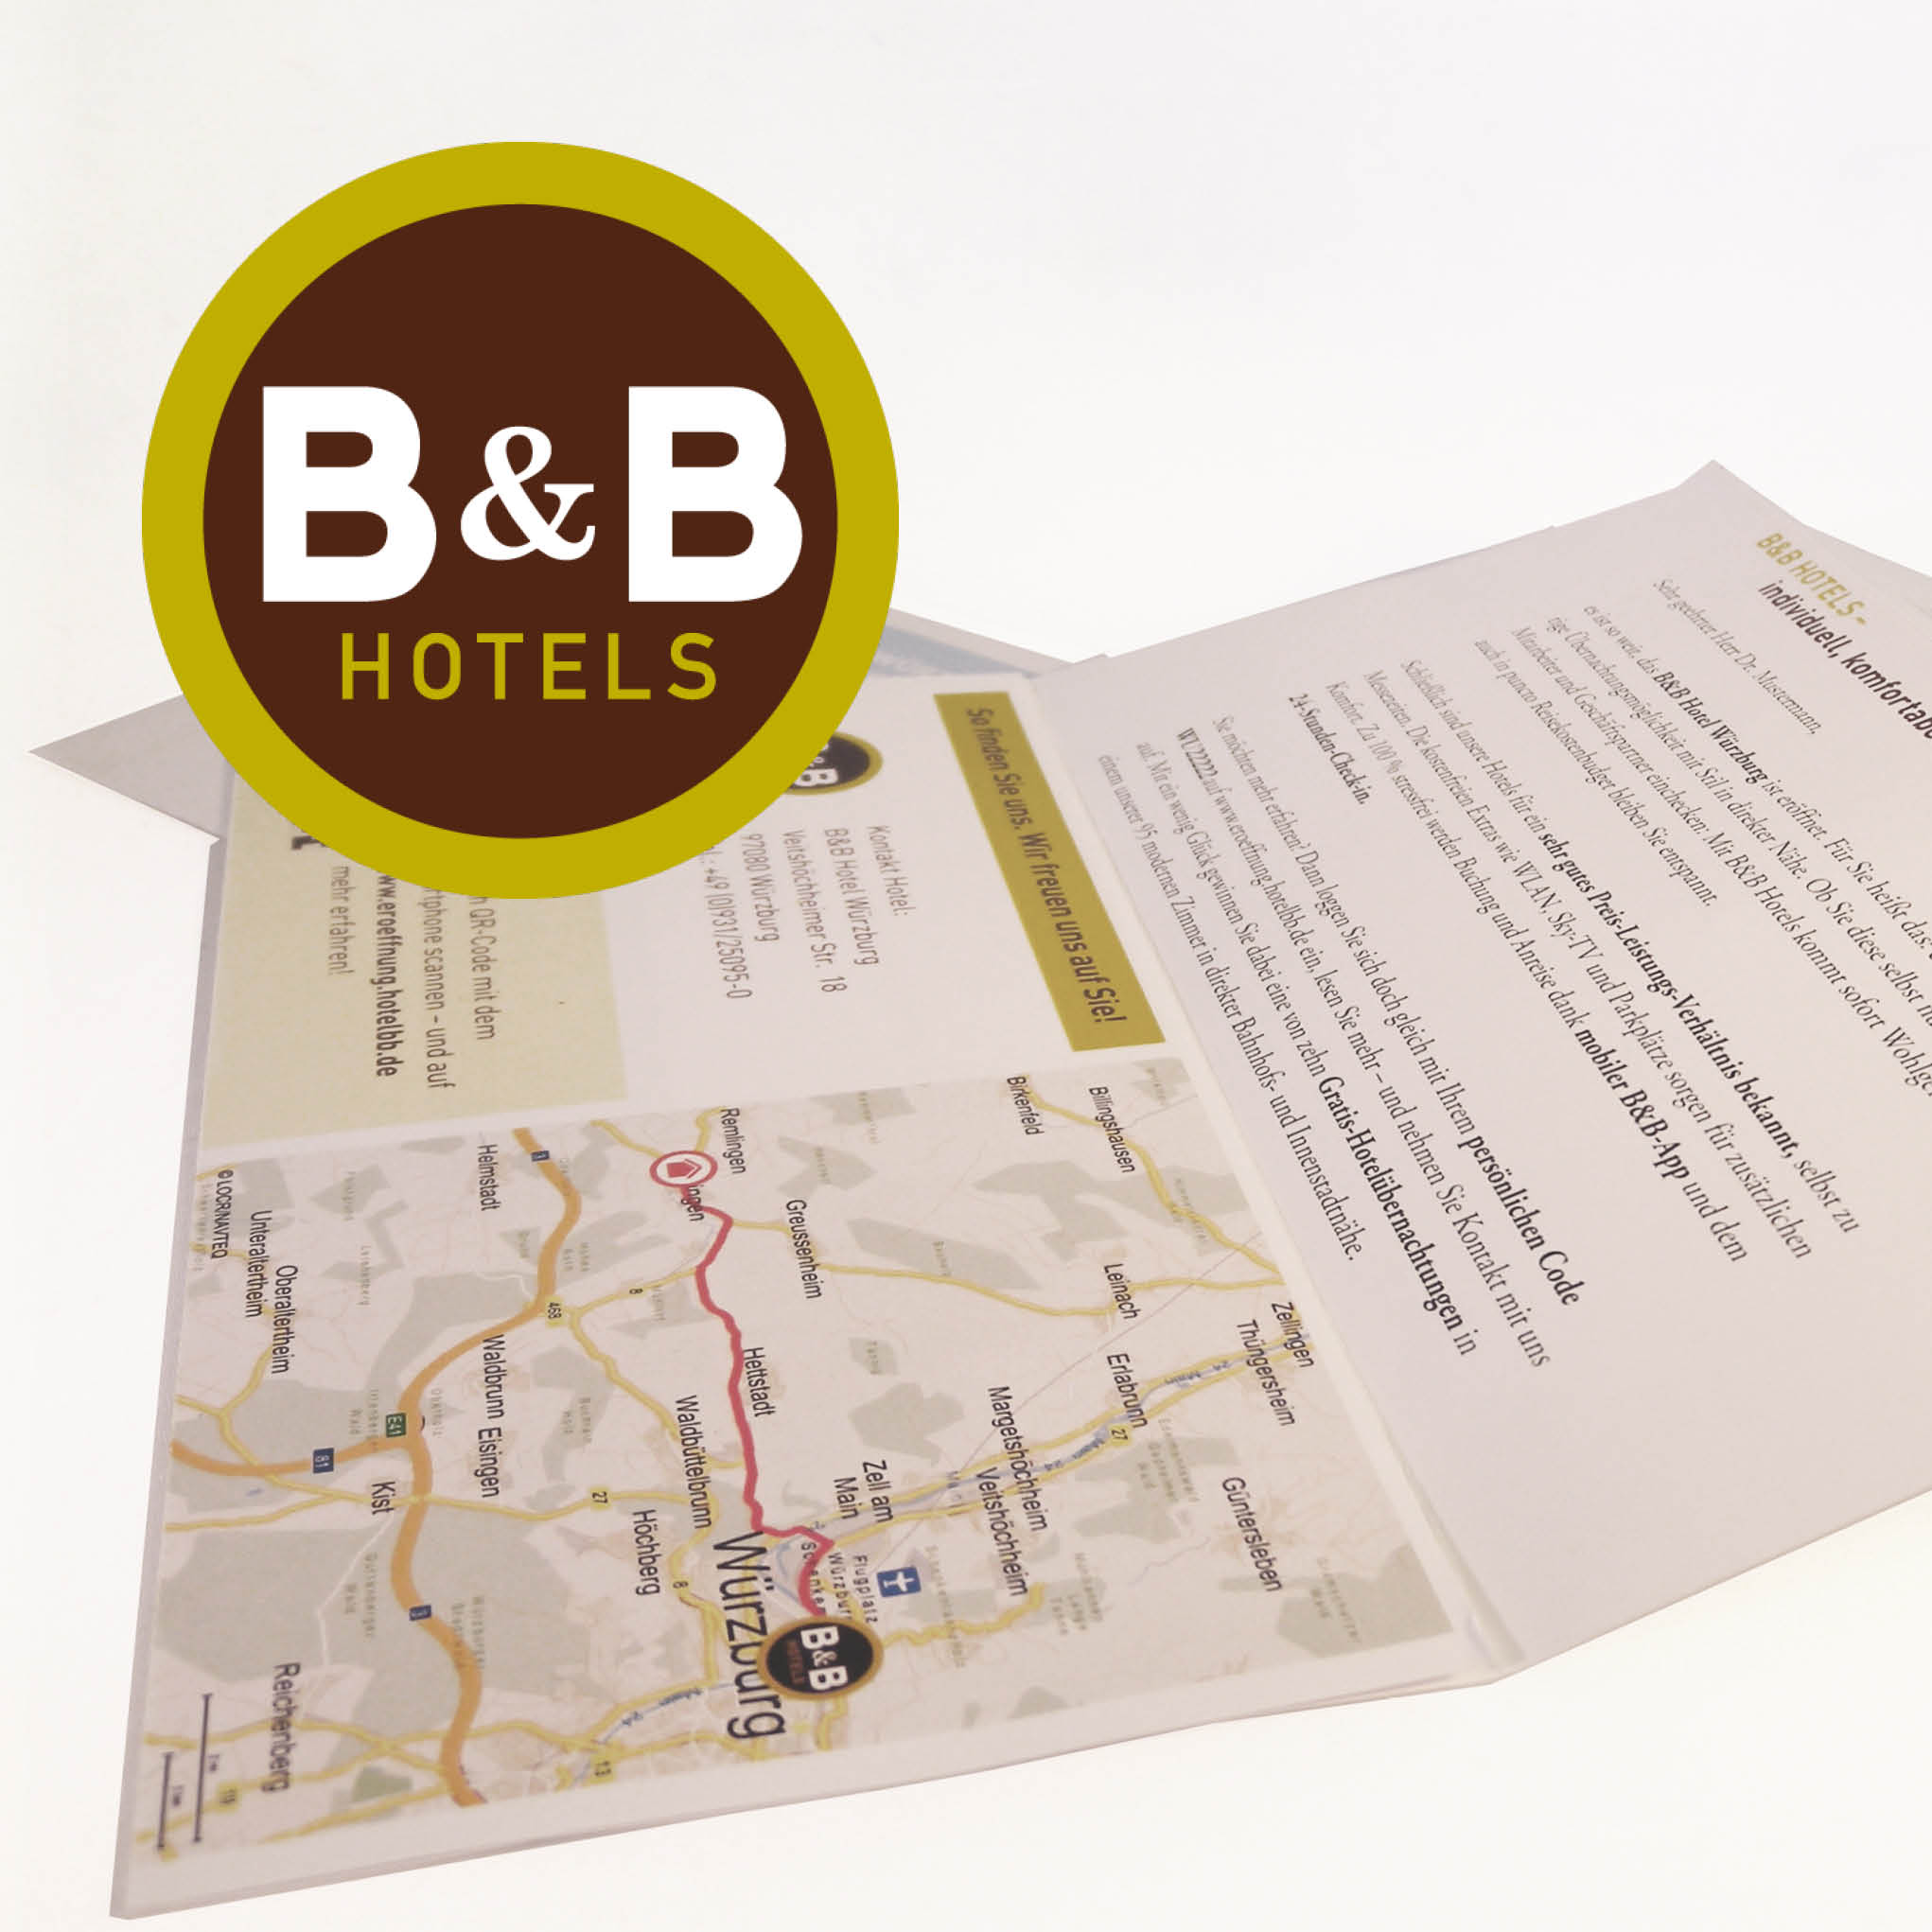 B&B Hotels use locr personalized maps for direct marketing in direct mail campaign to boost awareness